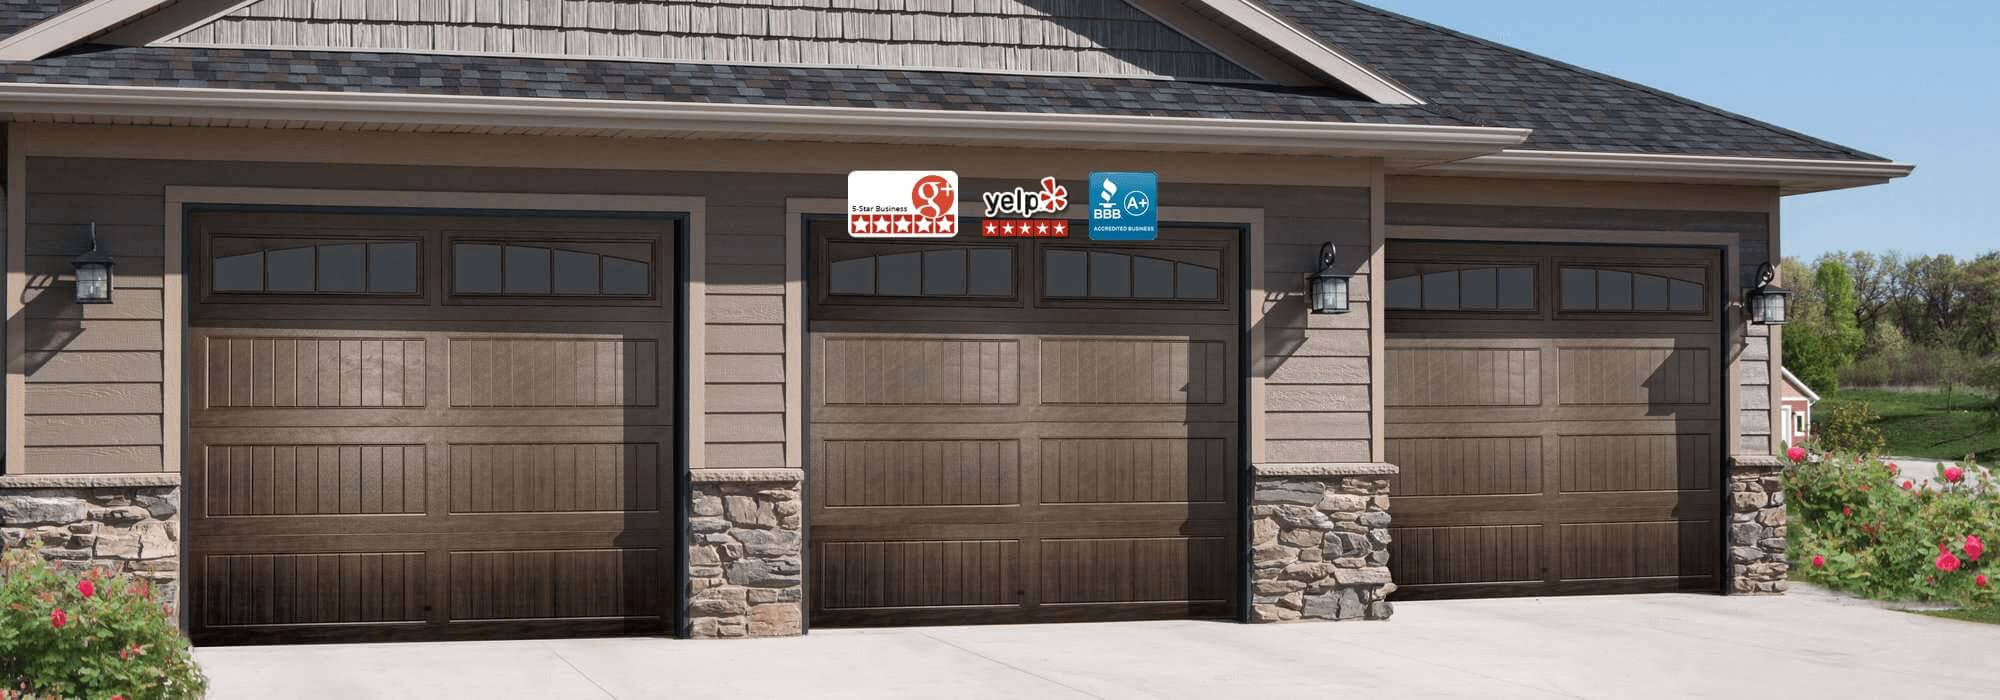 Garage Door Repair Pasadena CA | Same Day Service - CALL 24/7 on shower door repair, home door repair, garage car repair, this old house door repair, auto door repair, diy garage repair, sliding door repair, garage ideas, garage kits, cabinet door repair, garage walls, pocket door repair, garage doors product, refrigerator door repair, door jamb repair, interior door repair, anderson storm door repair, garage storage, backyard door repair, garage sale signs,